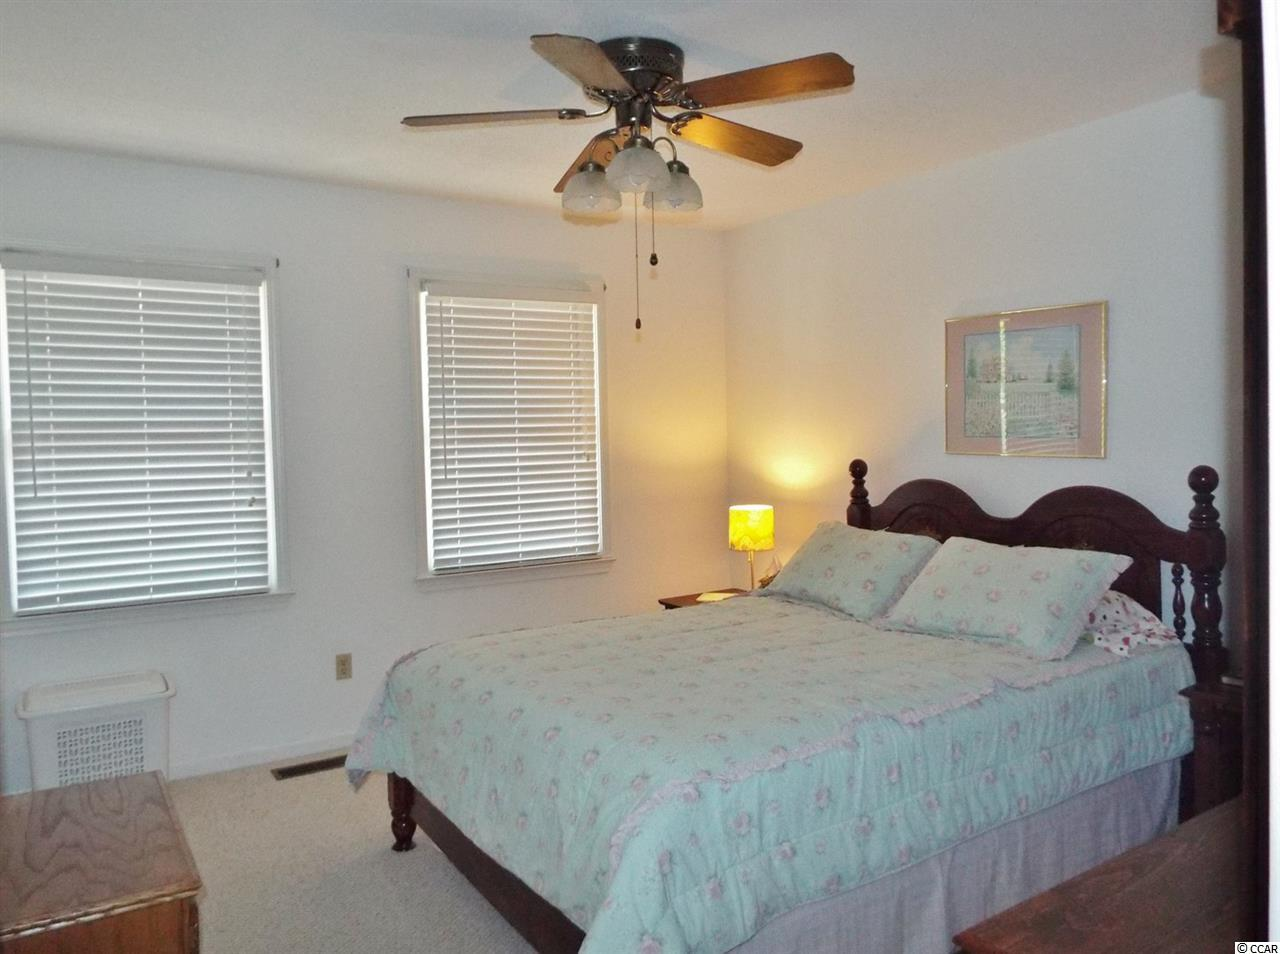 2 bedroom condo at 705 26th Ave S